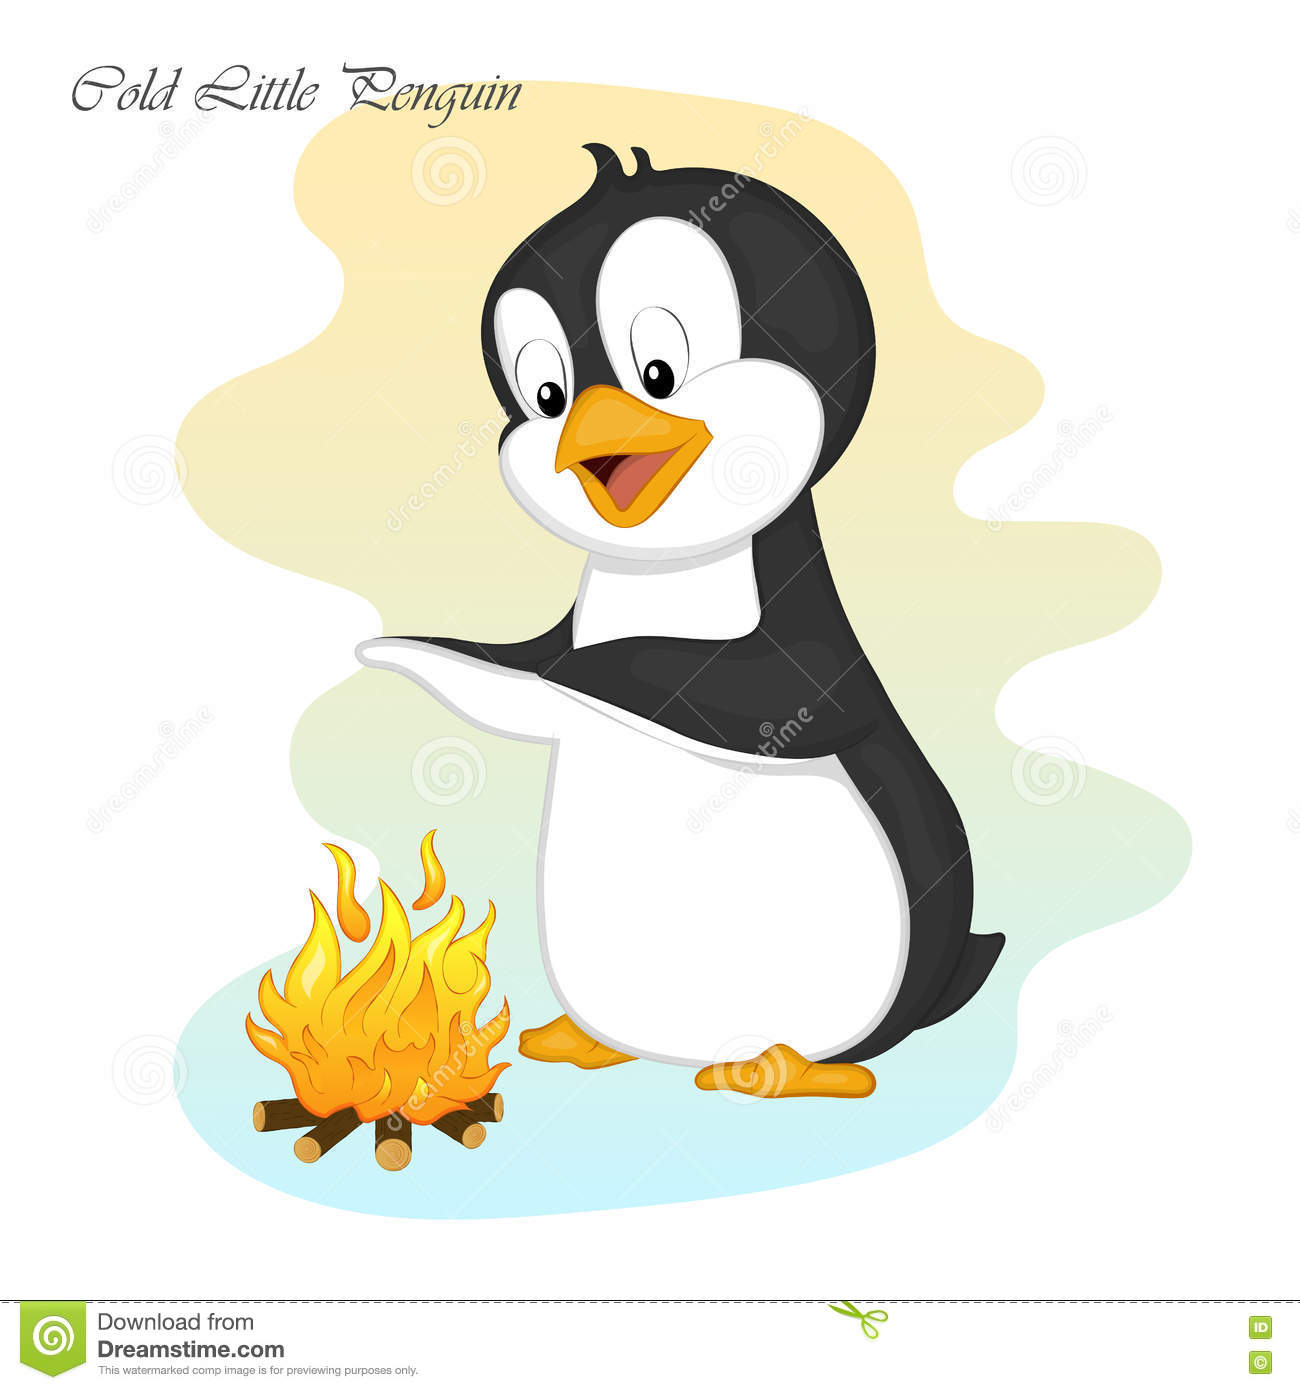 Funny And Cute Cold Little Penguin Make A Fire. Merry